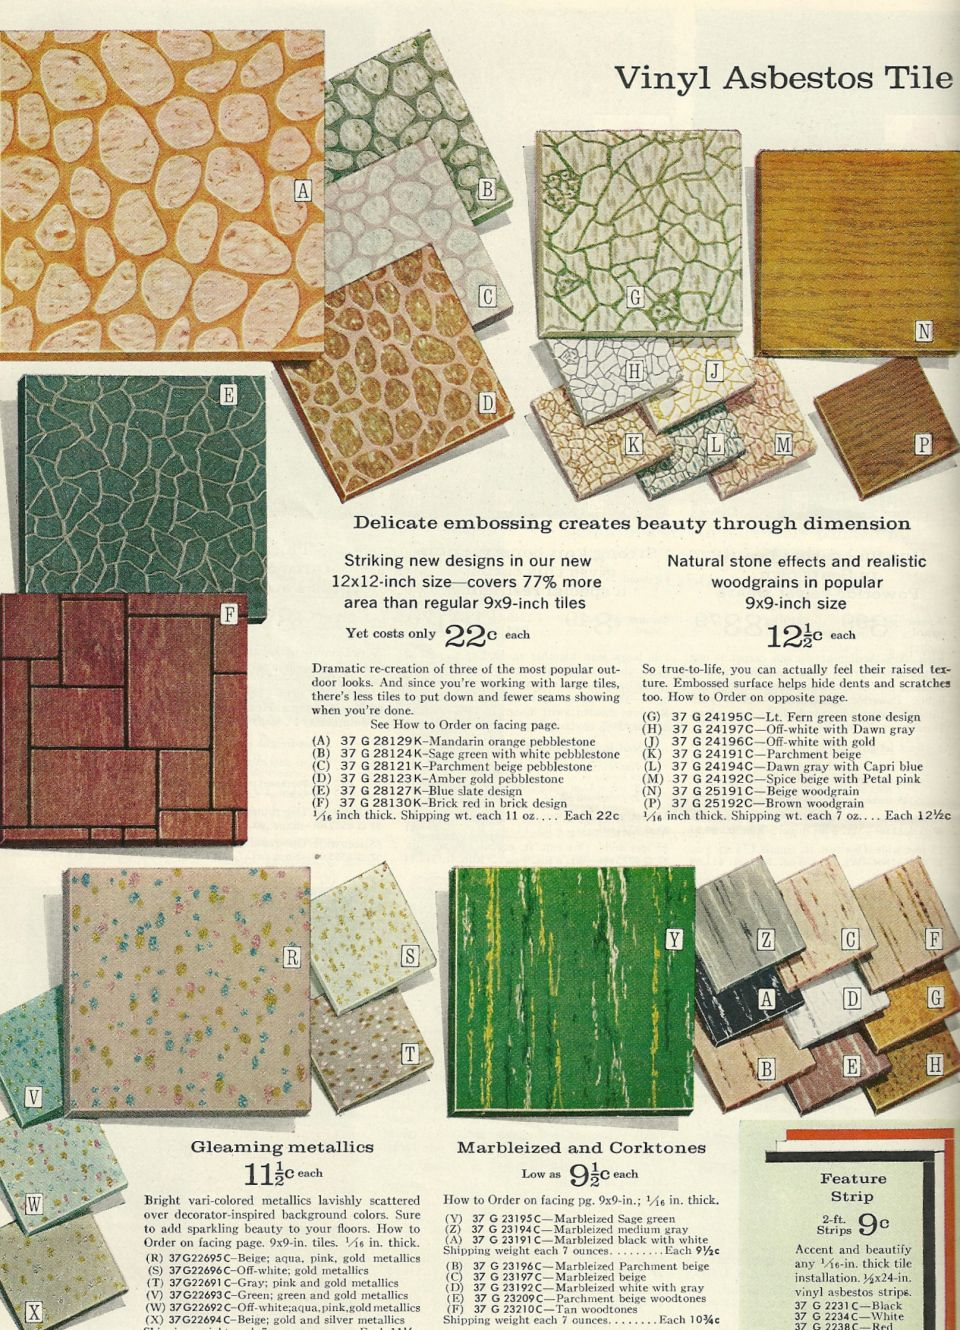 Vintage Home Decorating 1960s Floor Tiles And Vinyl Vintage House Vintage Home Decor Tiles